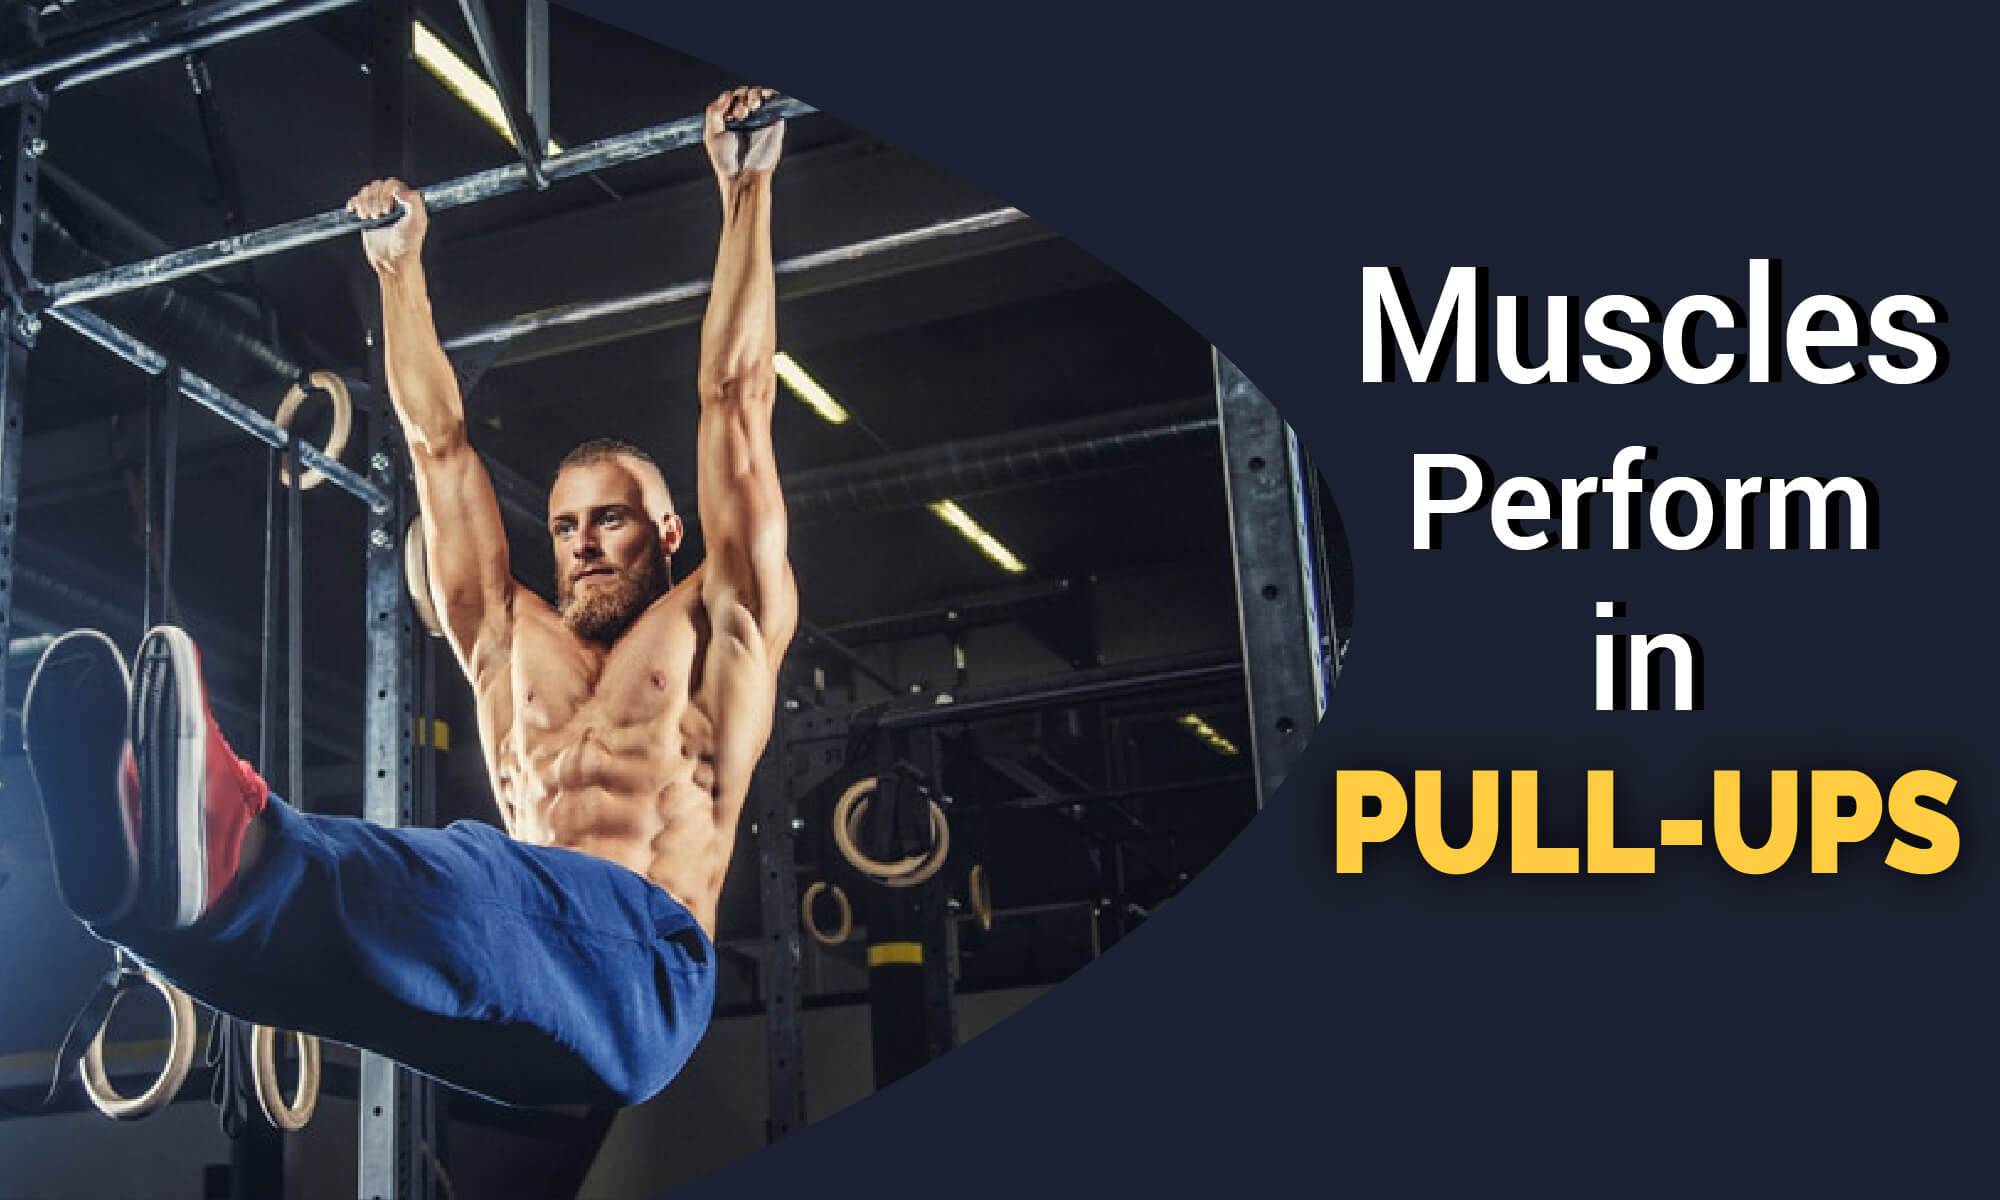 What Muscles Work & Perform in Pull-ups